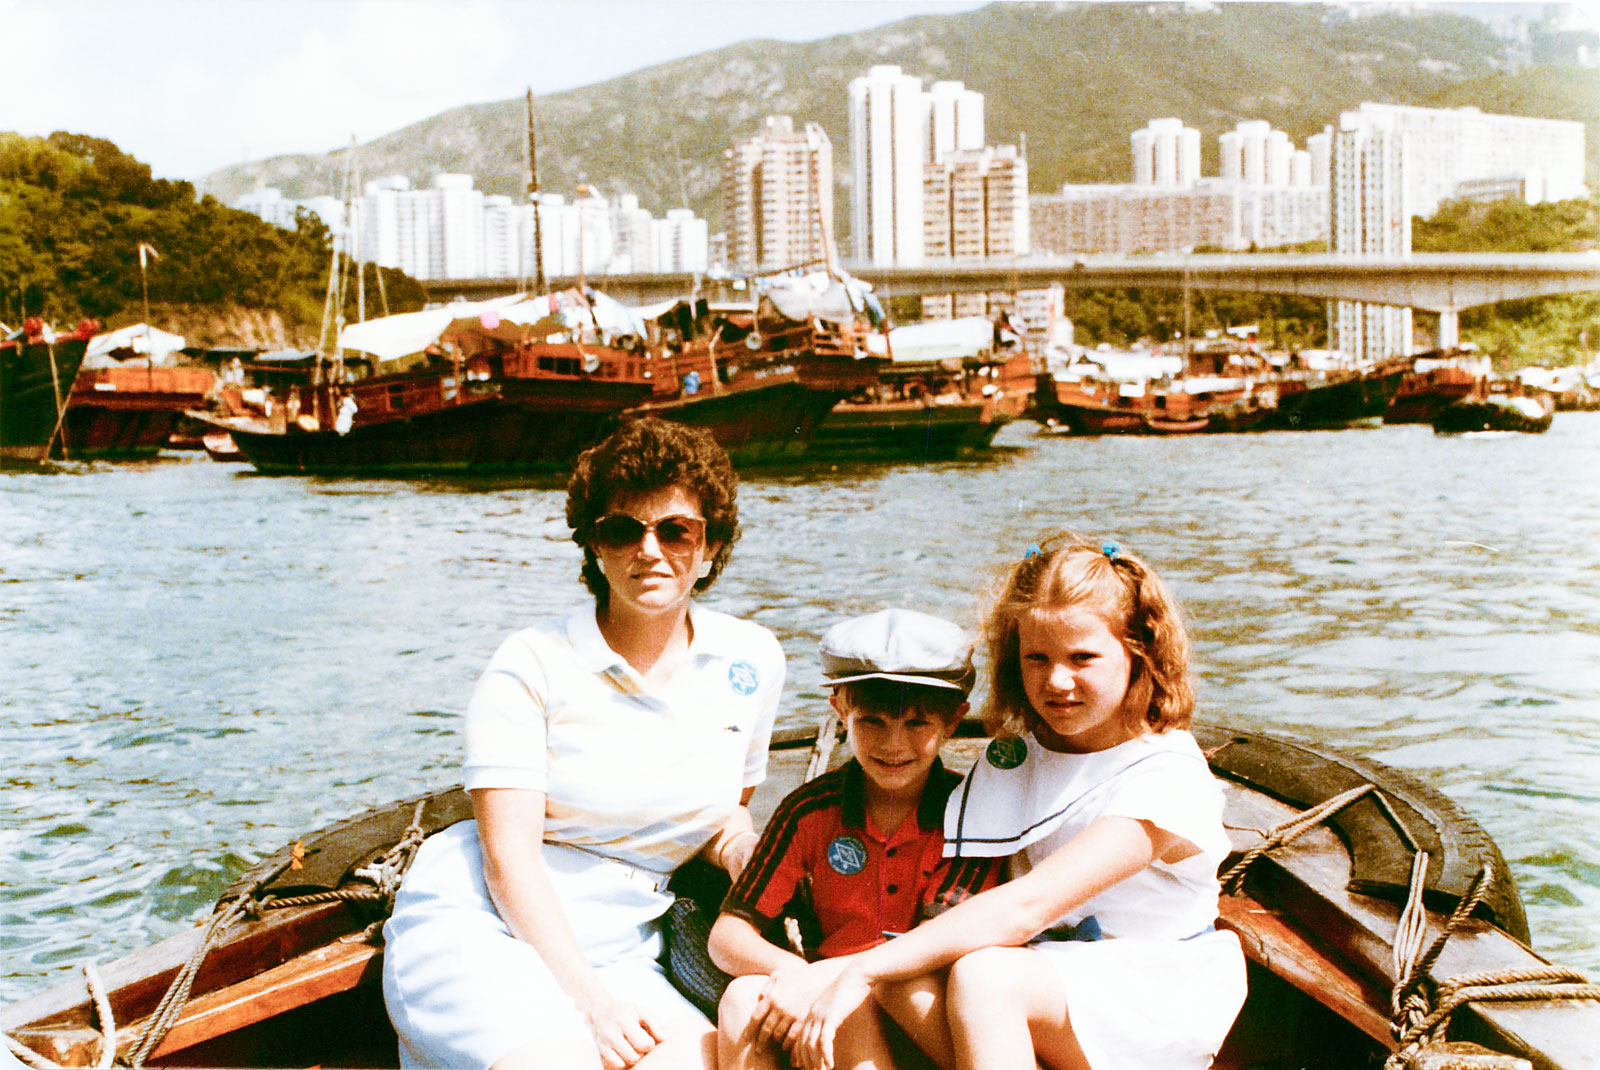 Didn't you want to see me growing up? How about my sailor outfit? My mom's awesome hair/sunglasses/culottes? My brother's sweet adidas shirt? Just your typical white people in Hong Kong in the 80s. And yea, this does prove that I've always had RBF.